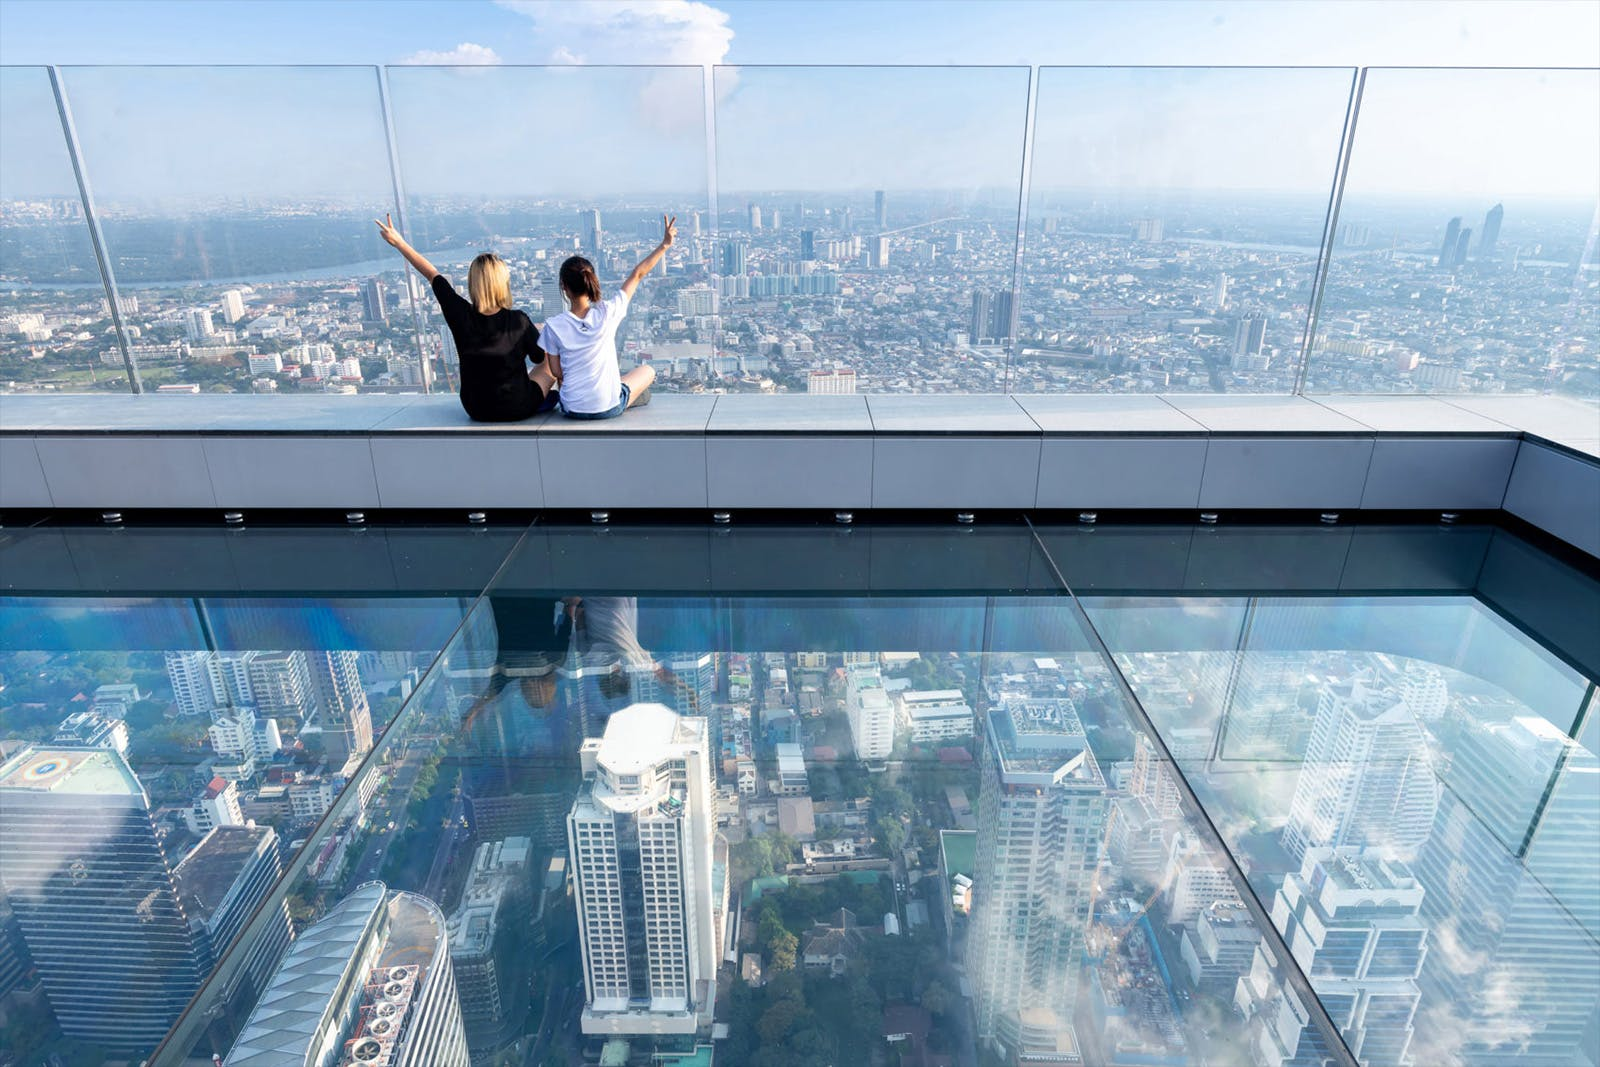 'Glass tray' observation deck now open in Thailand's tallest building